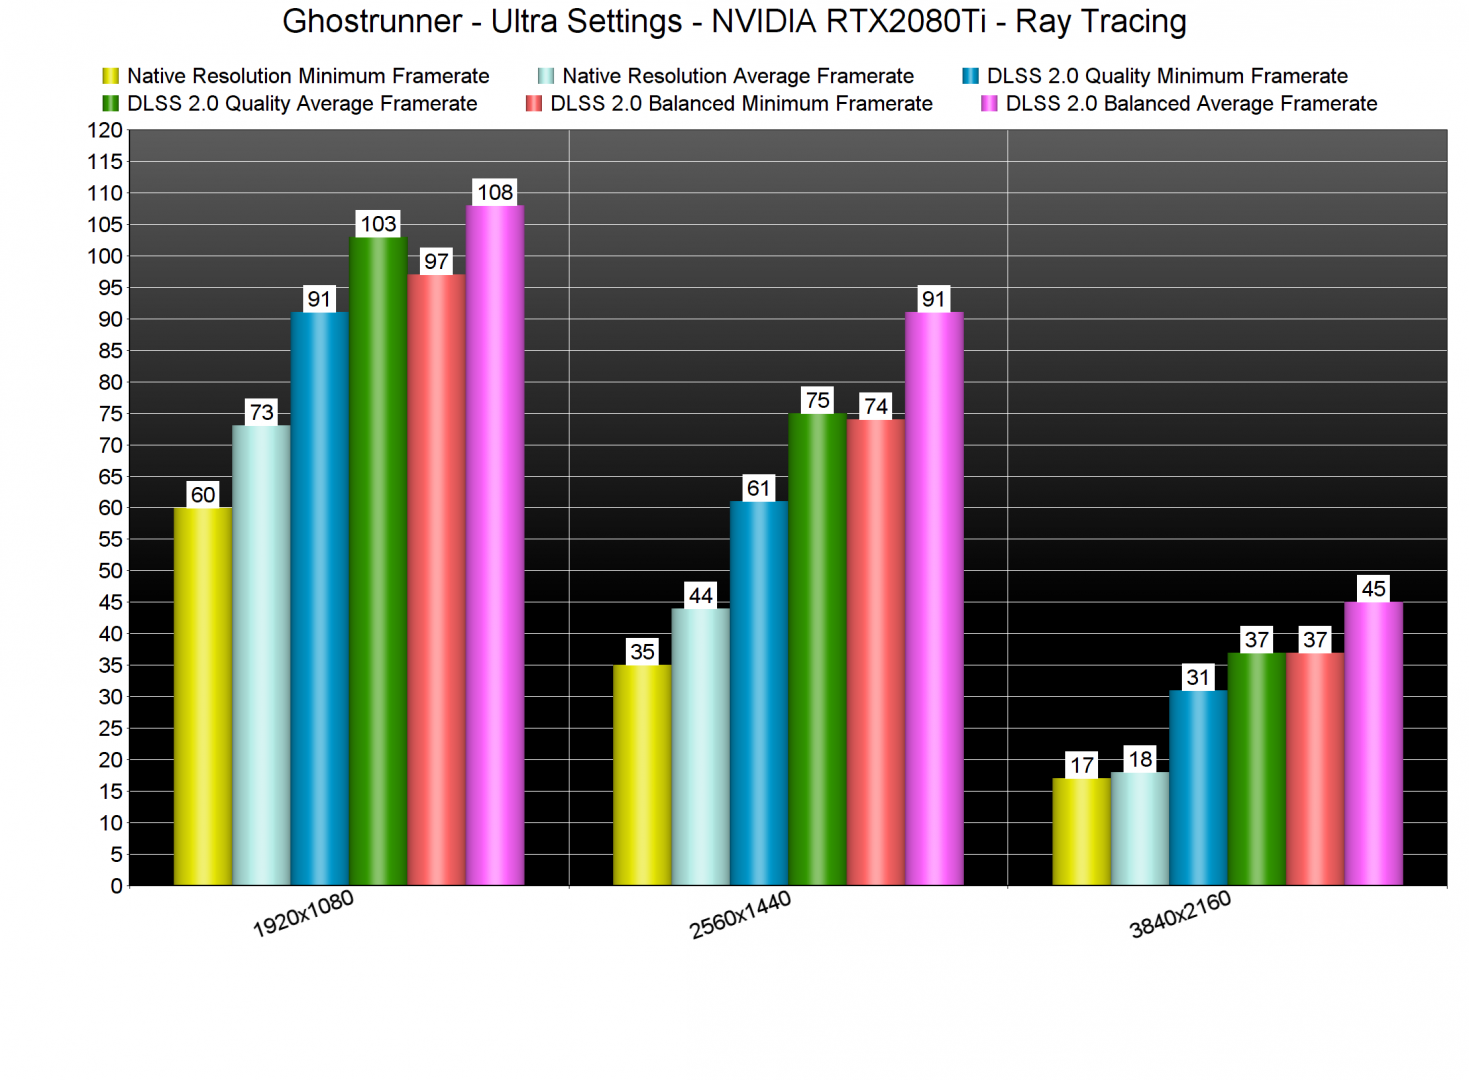 Ghostrunner Ray Tracing benchmarks